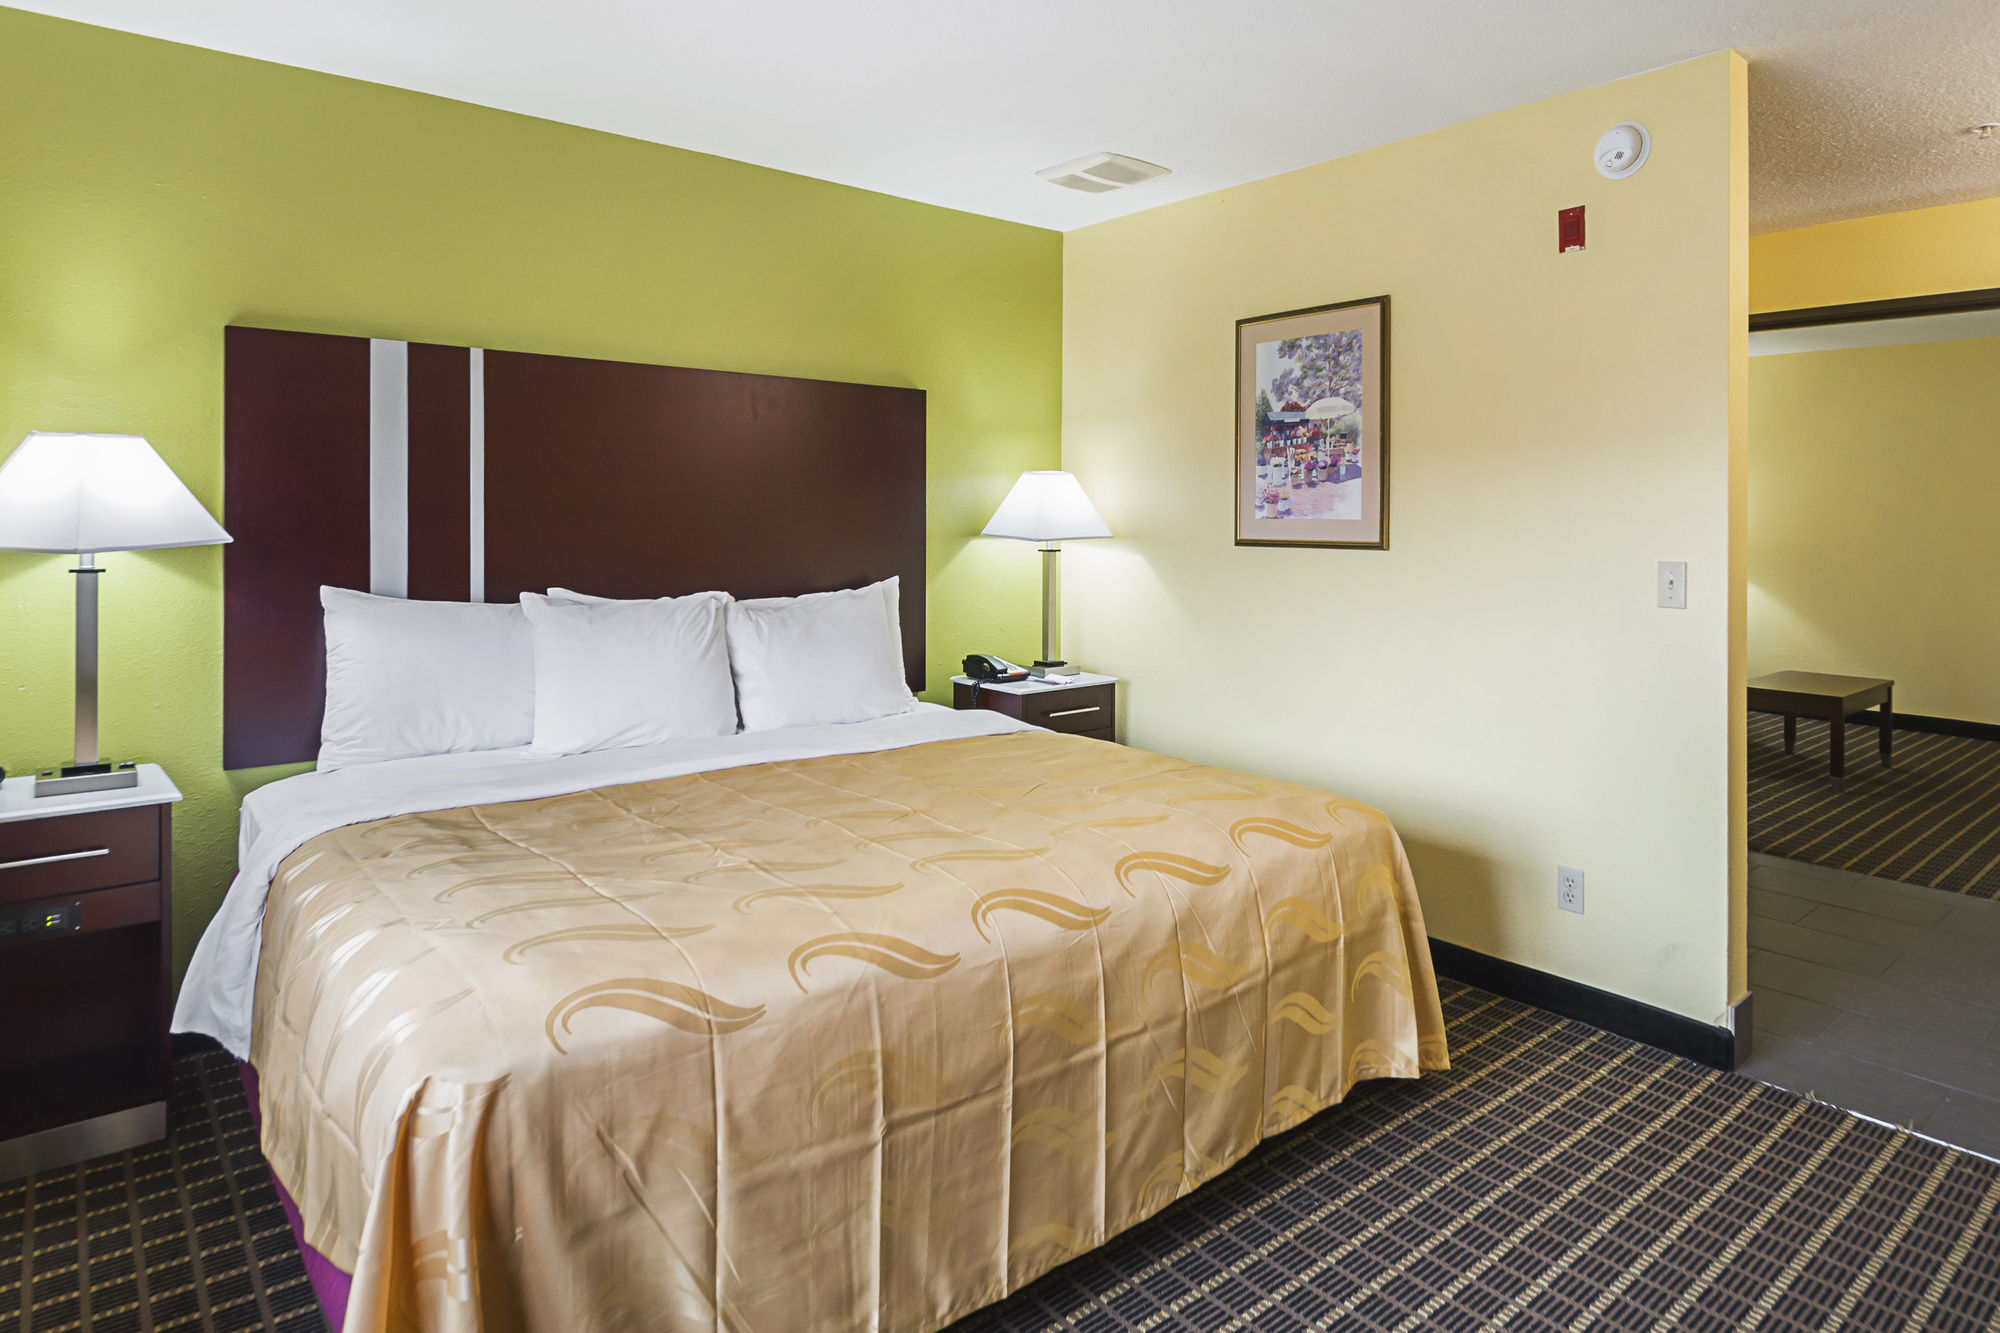 Quality Inn and Suites in Harrington, DE